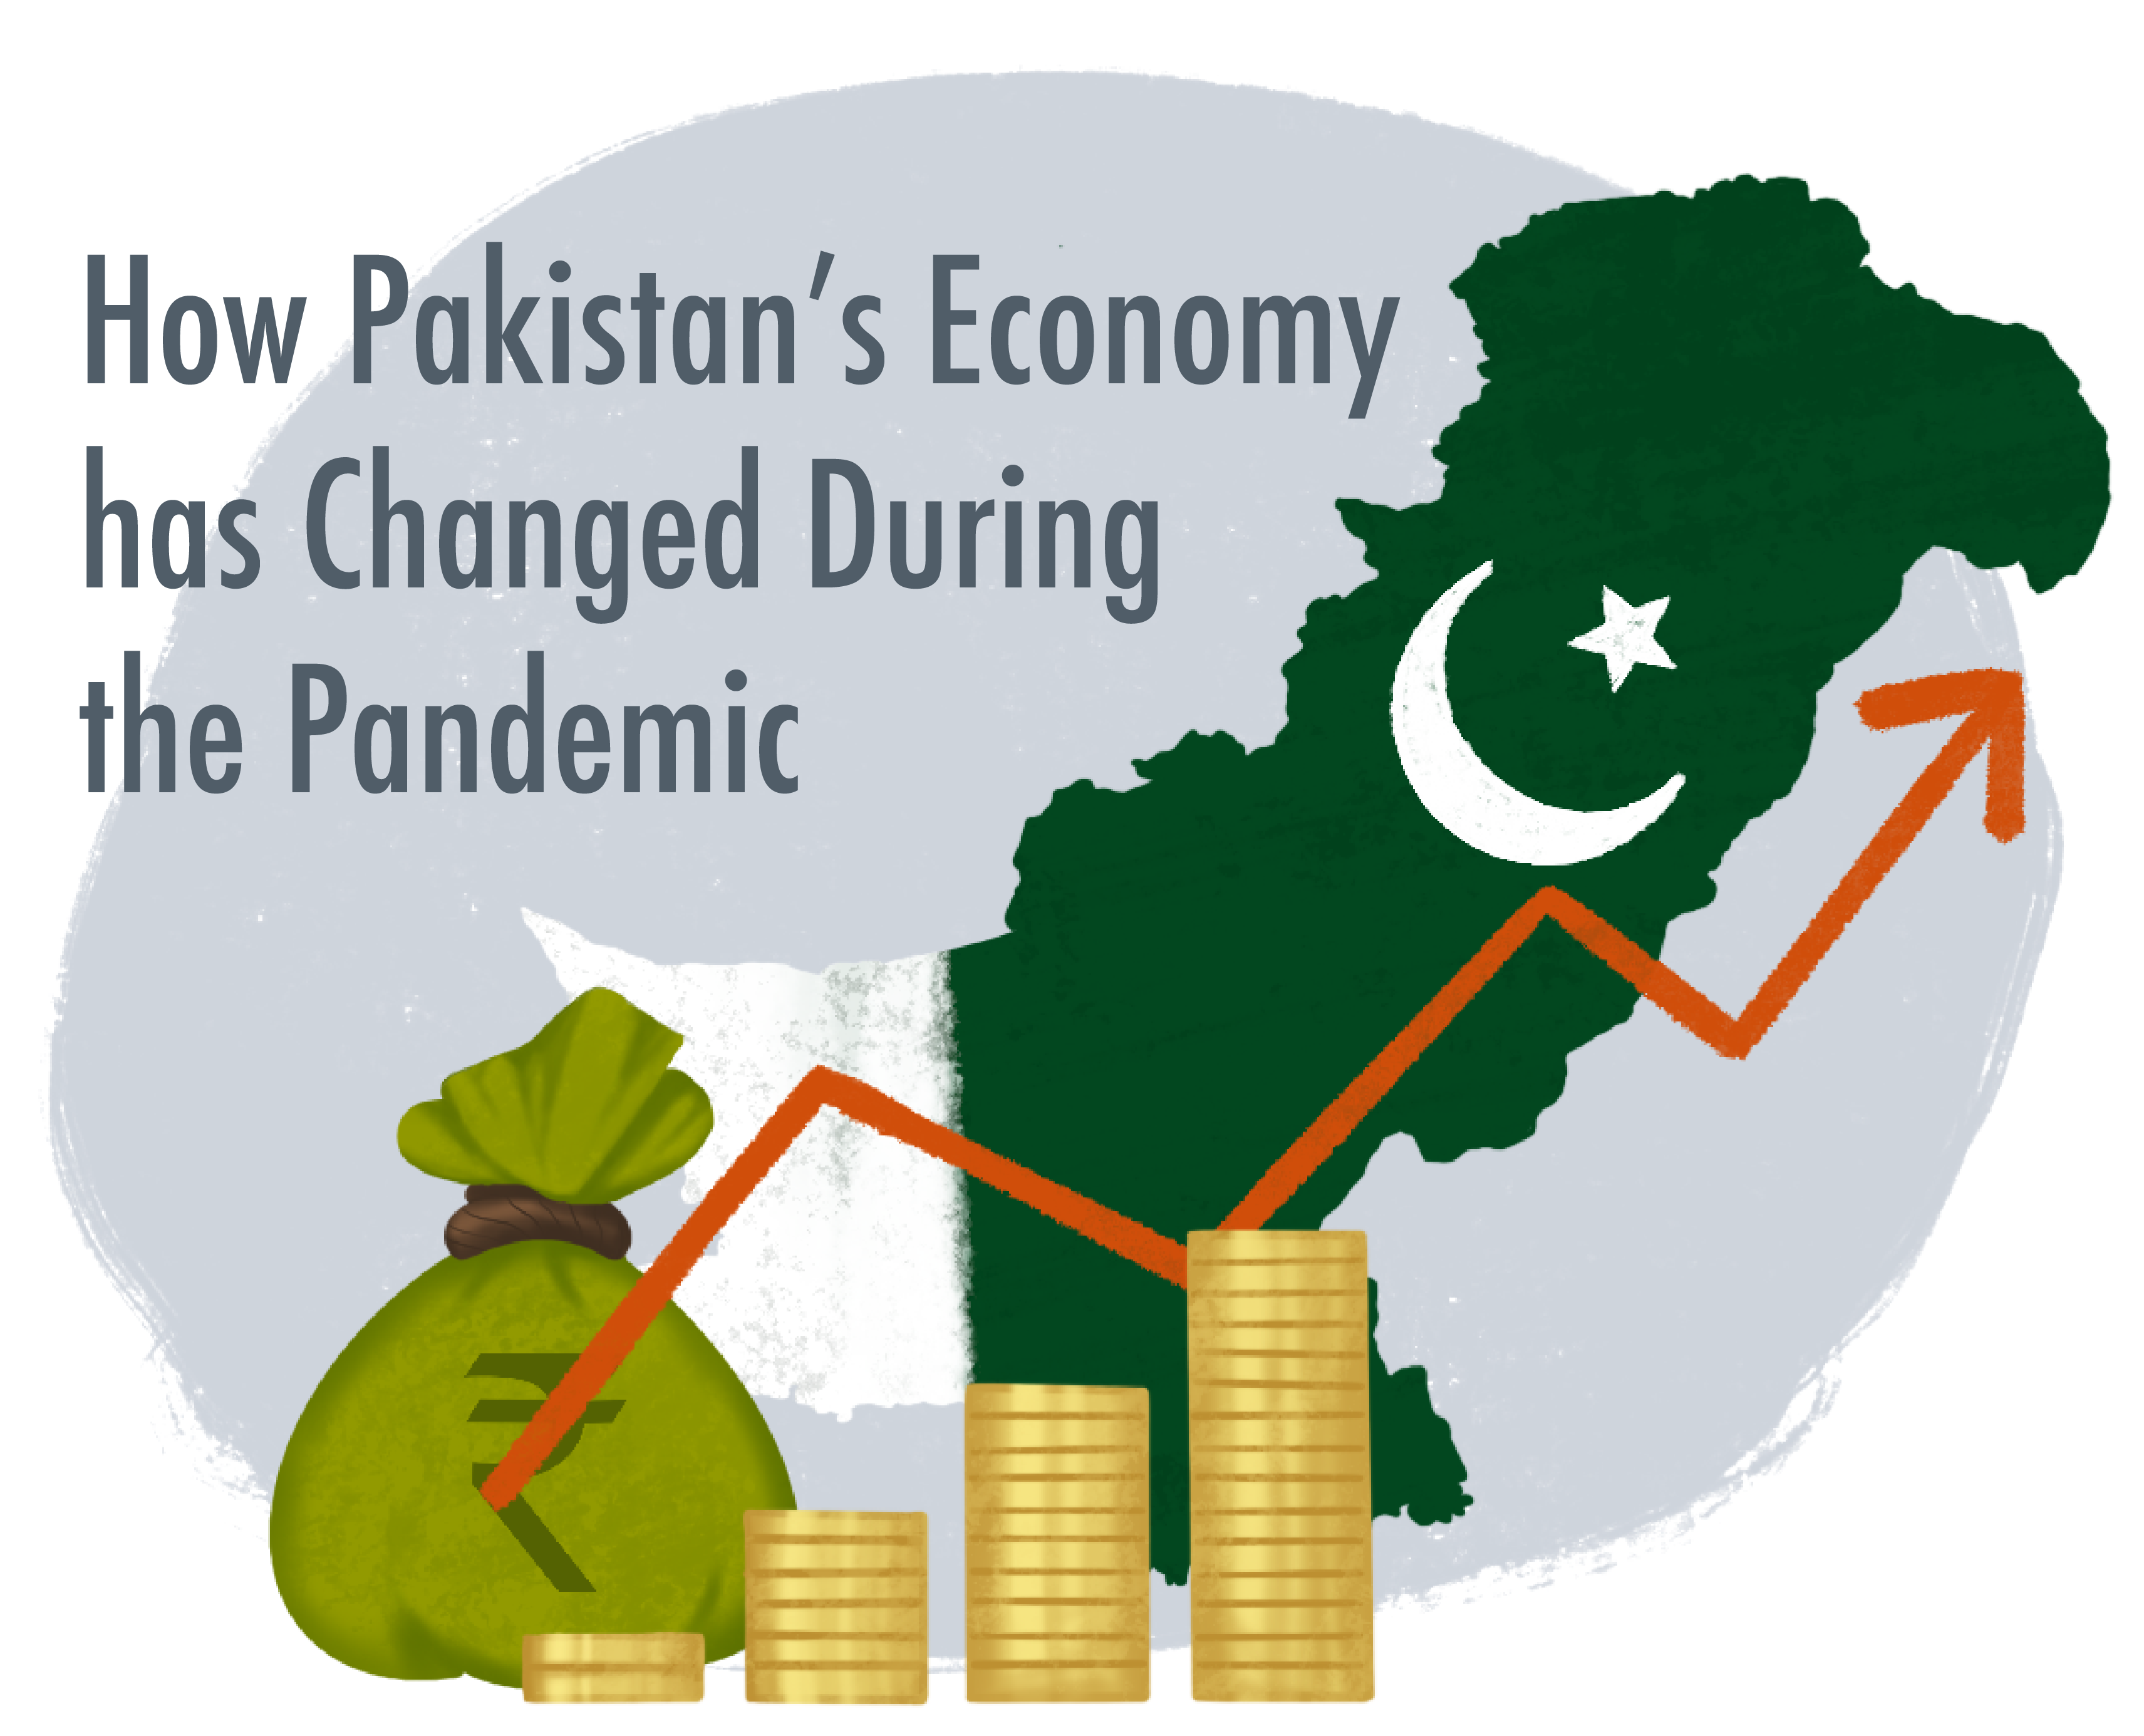 How Pakistan's Economy has Changed During the Pandemic